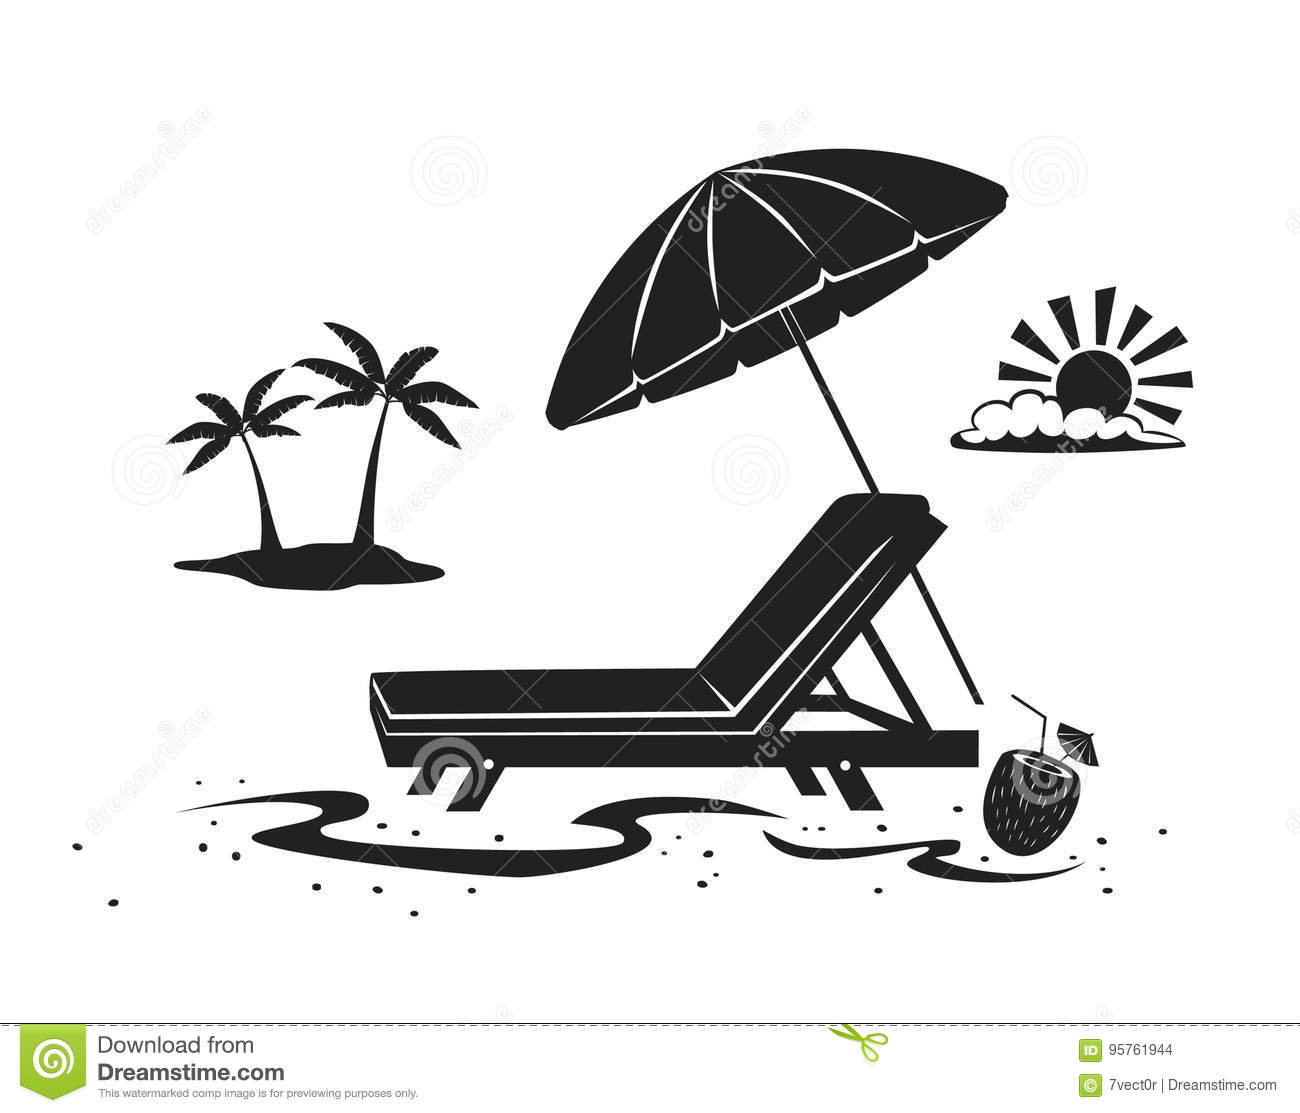 Download Summer Beach Time Vacation Silhouette Background With Umbrella Sun Lounge Chair And Palm Tree